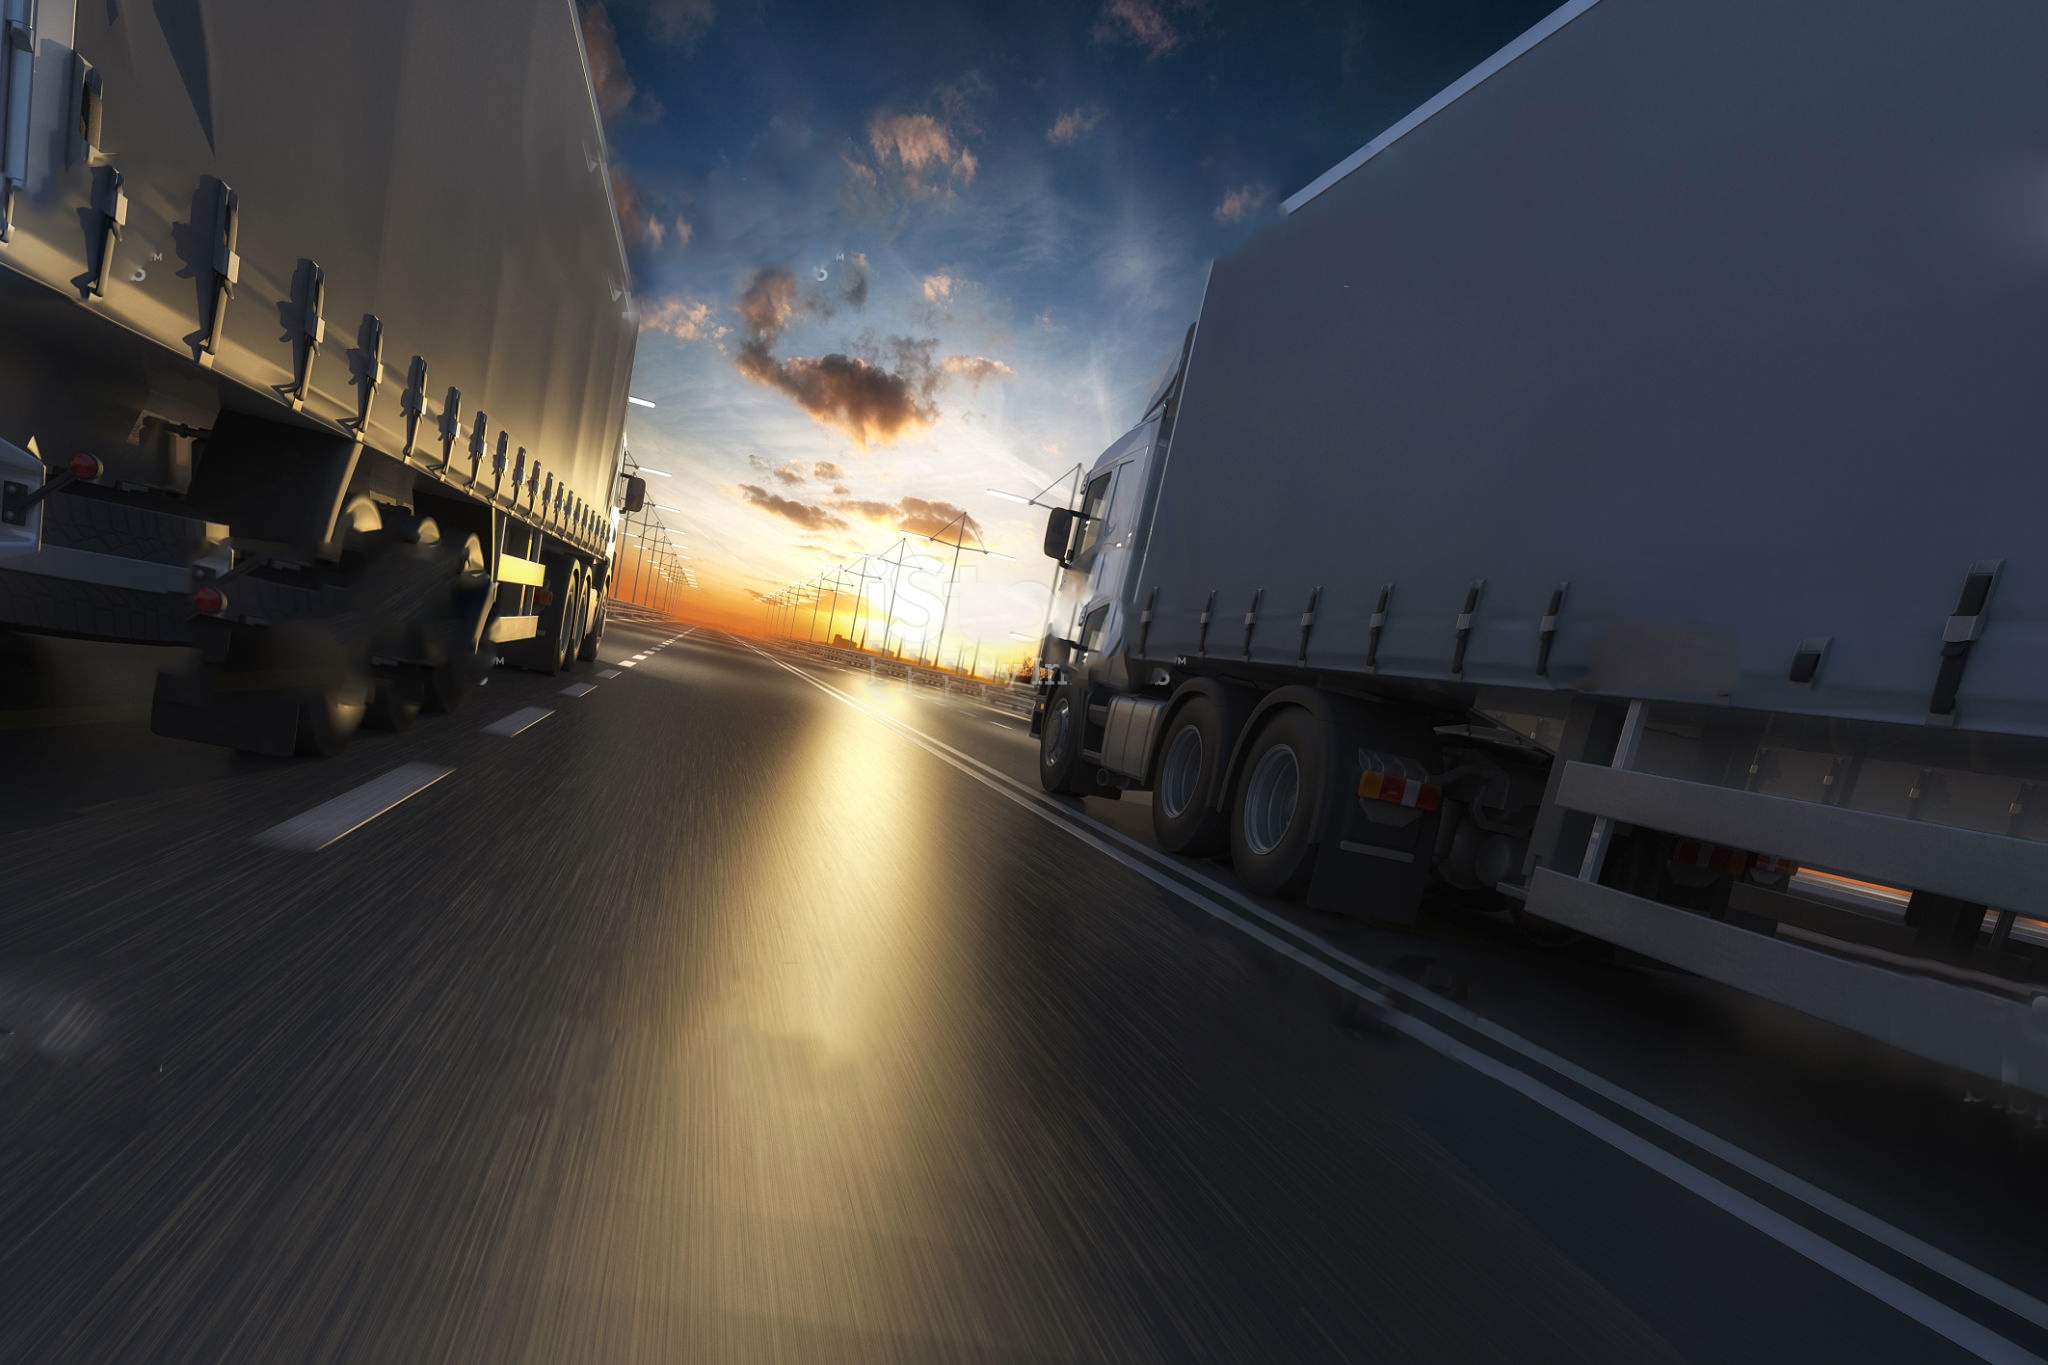 Two HGV trucks driving side by side into the sunset